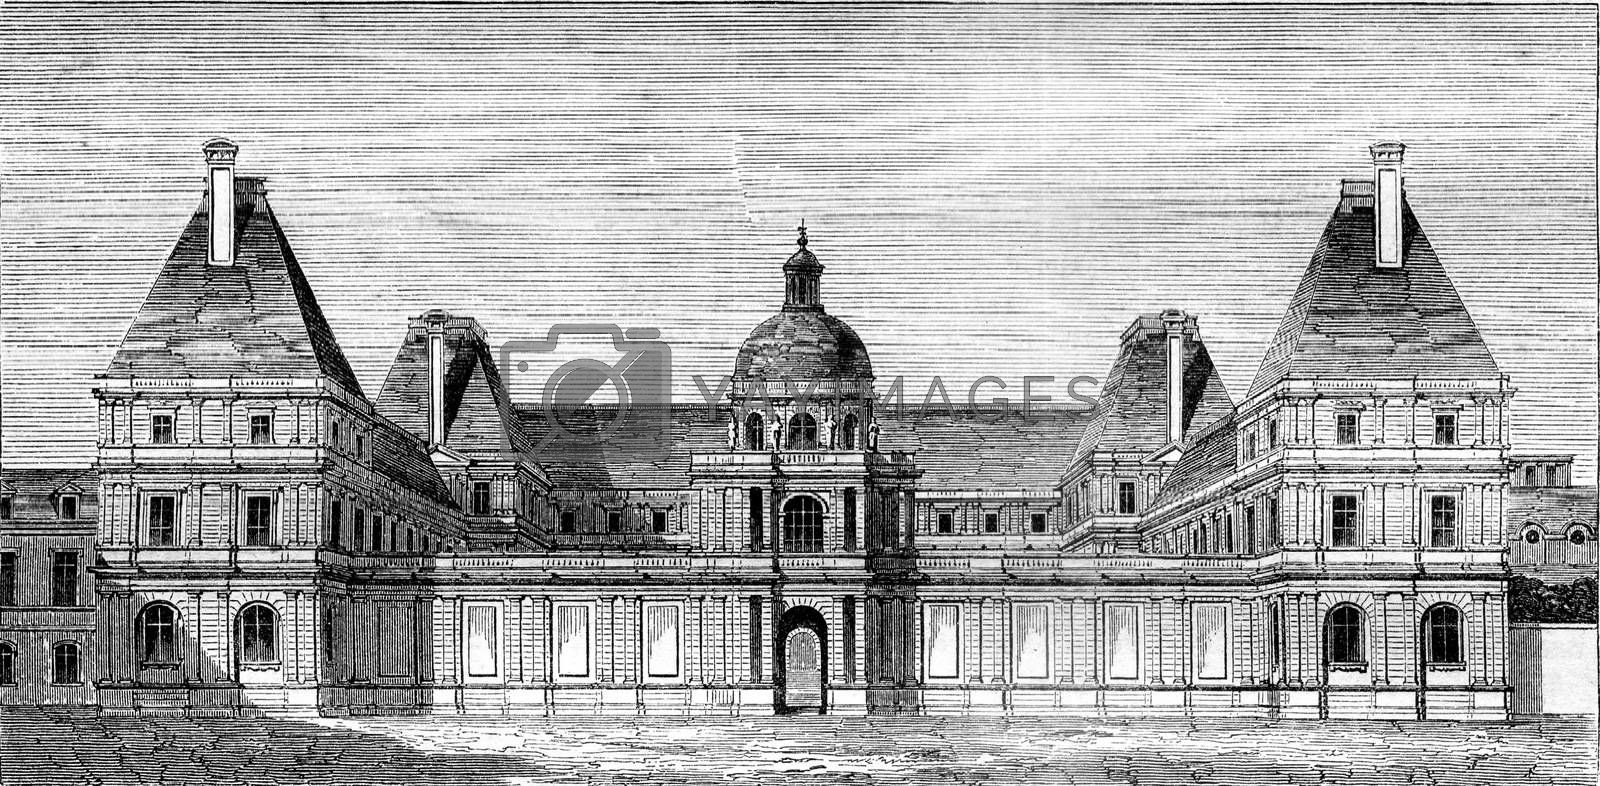 Luxembourg Palace, stand for Marie de Medici, vintage engraved illustration. Magasin Pittoresque 1845.